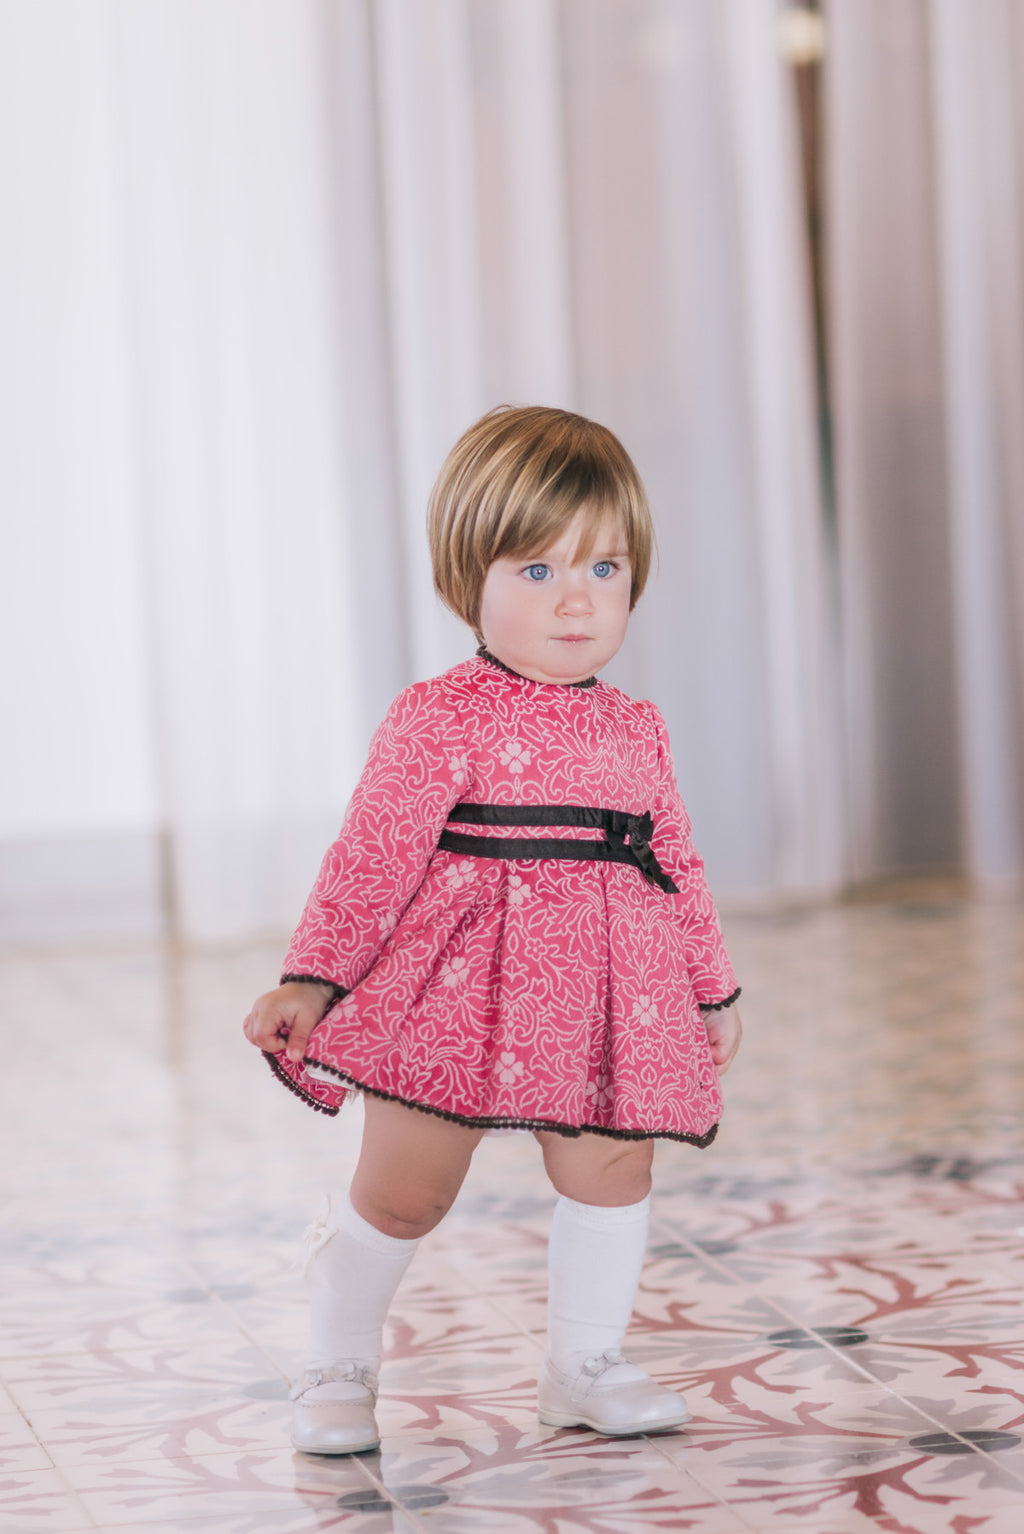 AW17 Dolce Petit Baby Girls Pink Dress With Brown Bows 2131-V - Liquorice Kids